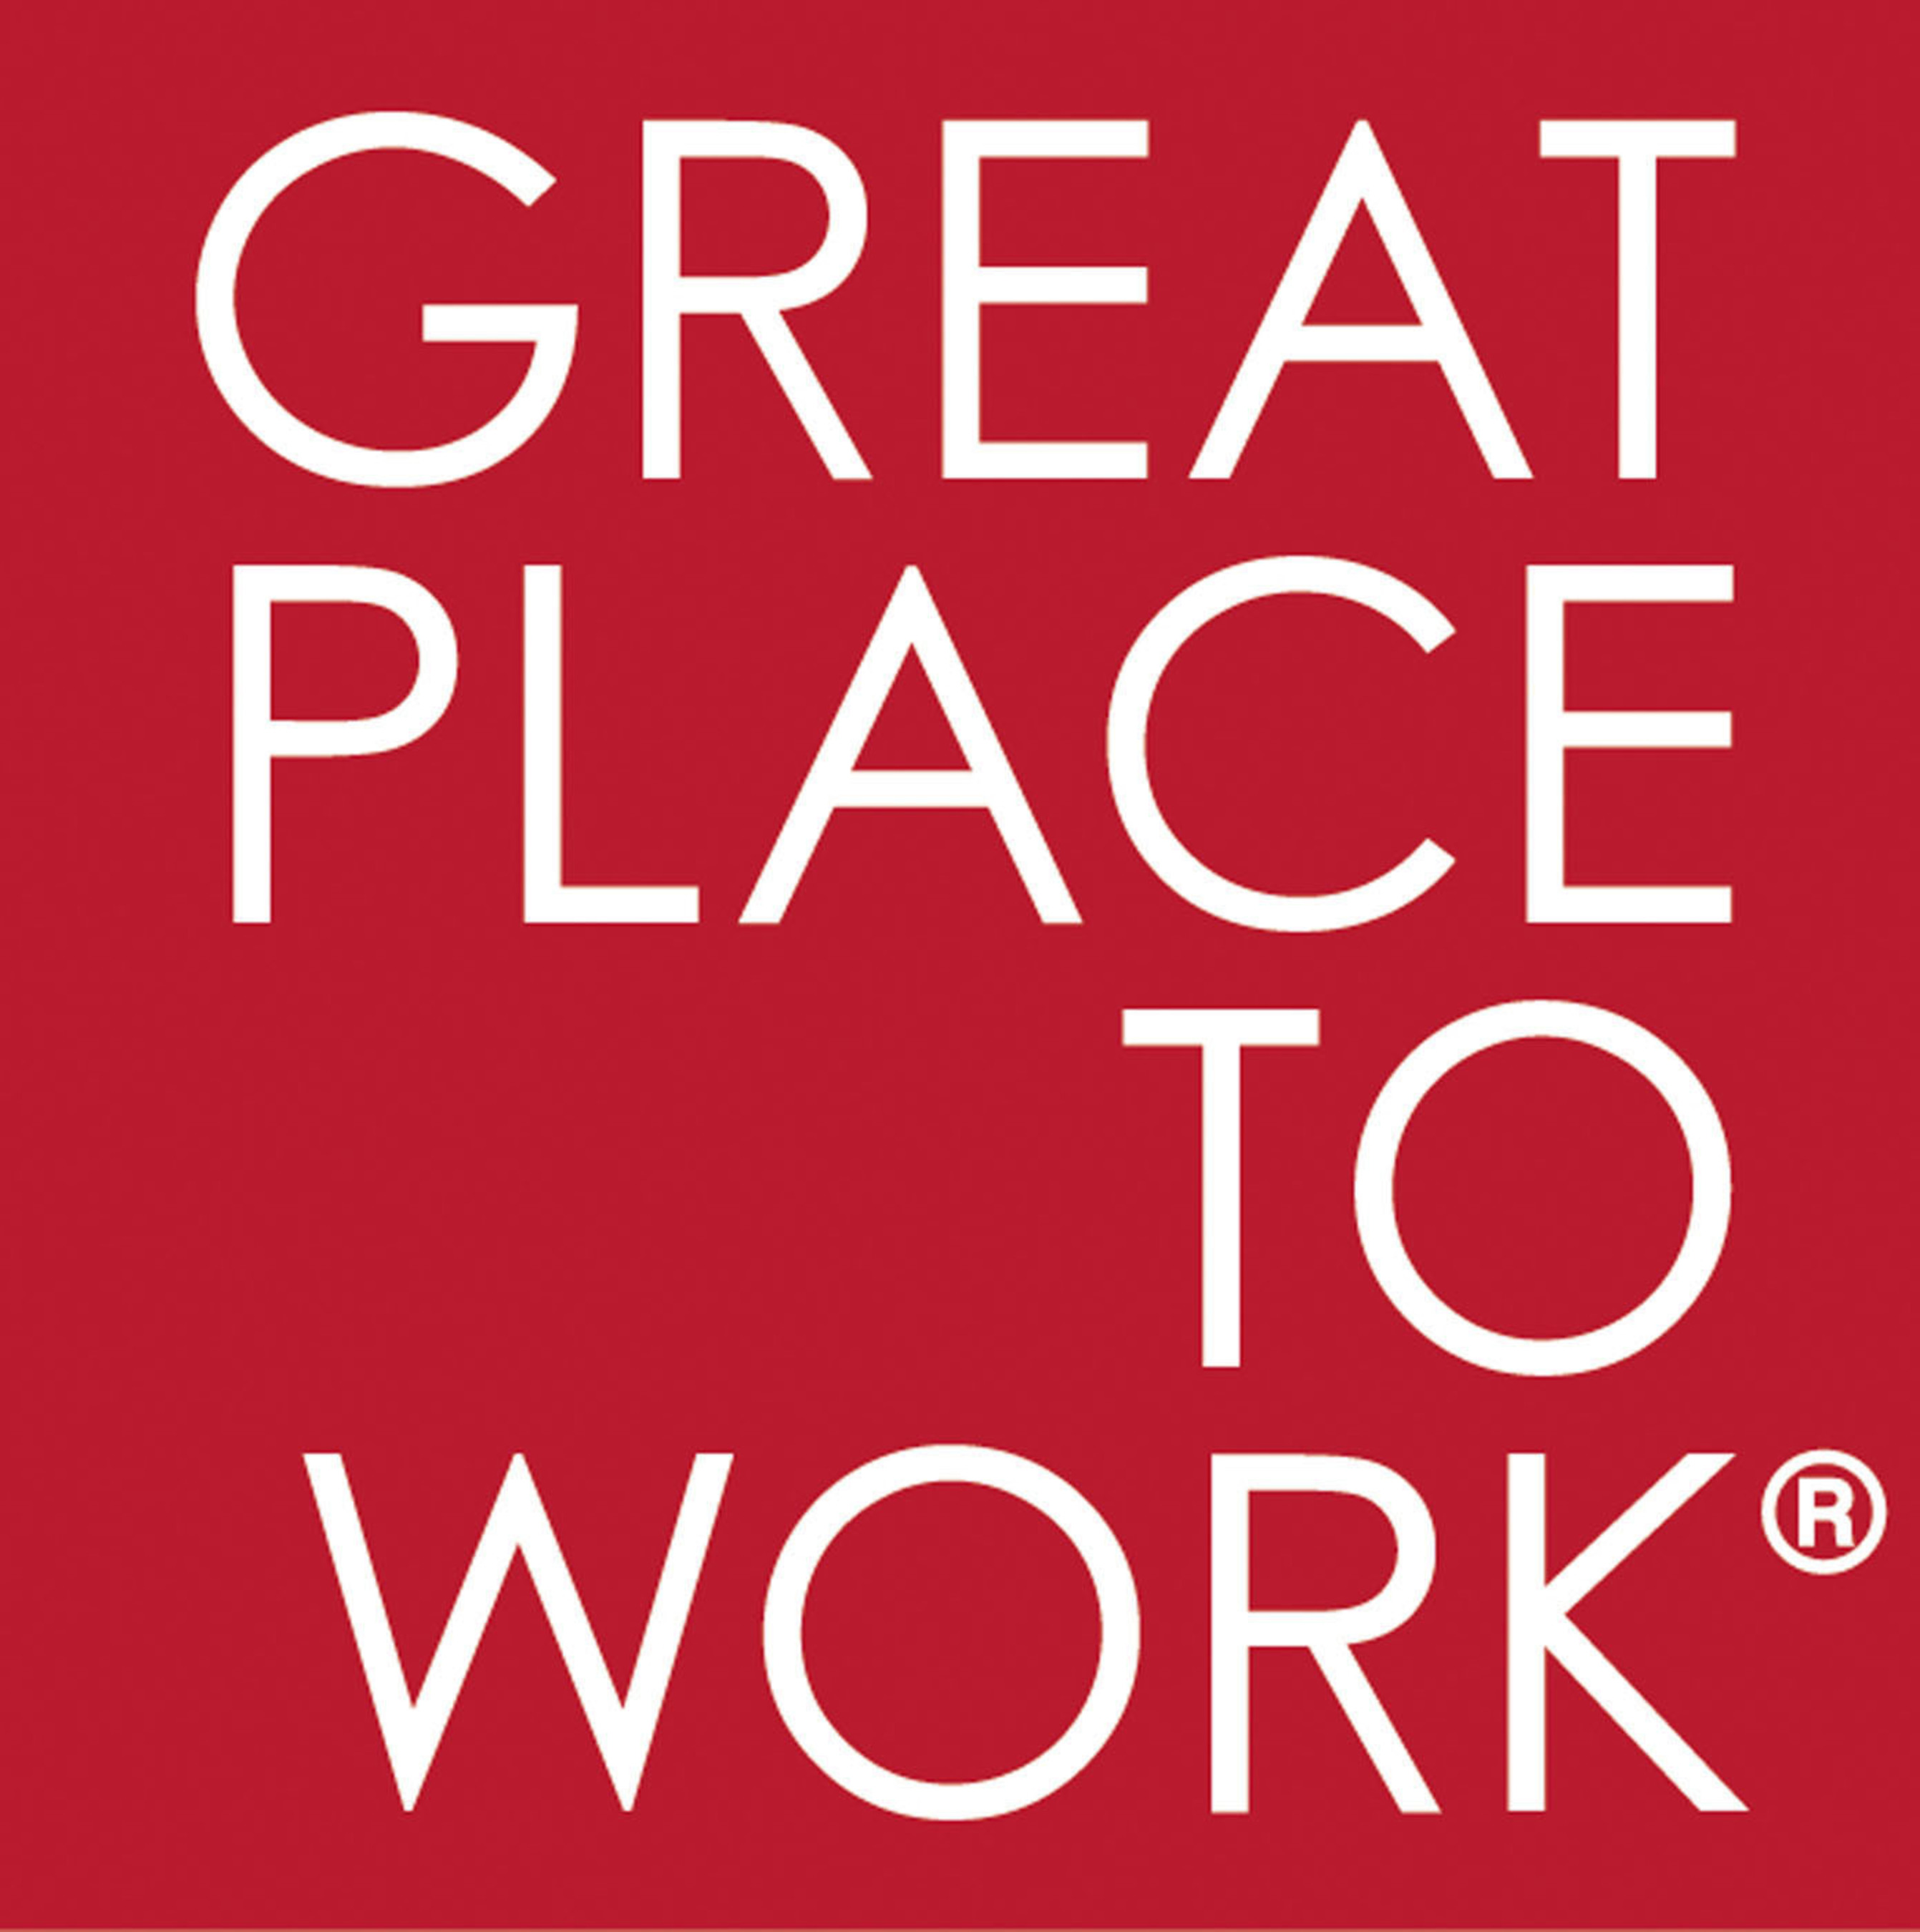 Great Place to Work® Institute conducts research and recognizes leading workplaces in more than 45 countries on six continents. Based on results of surveys representing over 10 million employees around the globe, these best workplaces' competitions form the basis of the world's largest and most respected set of studies of workplace excellence, management and the role of trust in workplace.